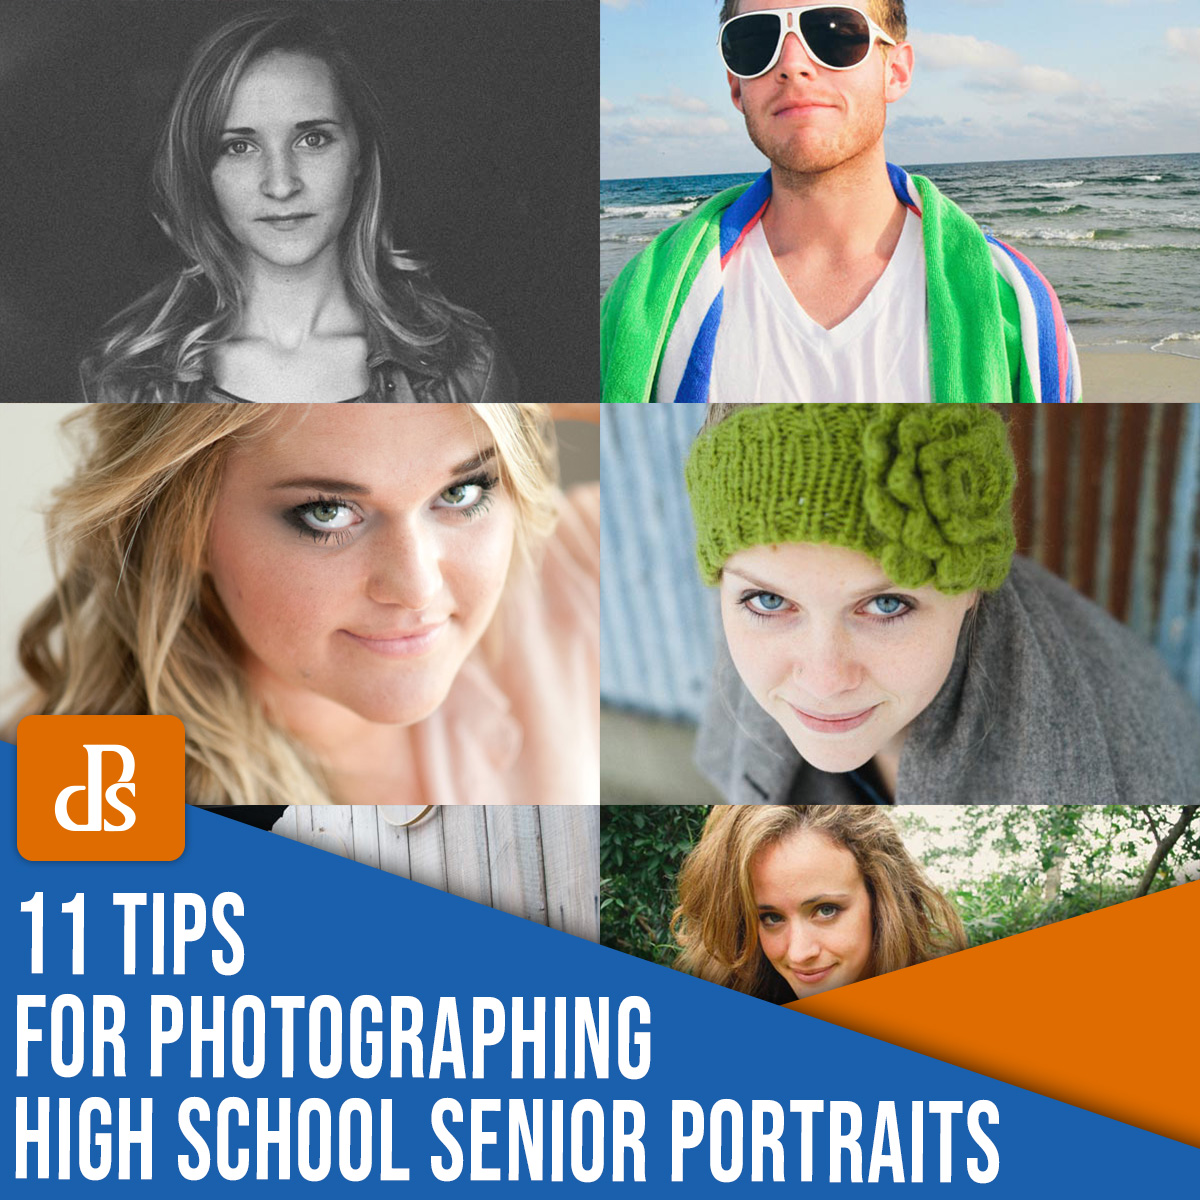 11 Tips for Photographing High School Senior Portraits